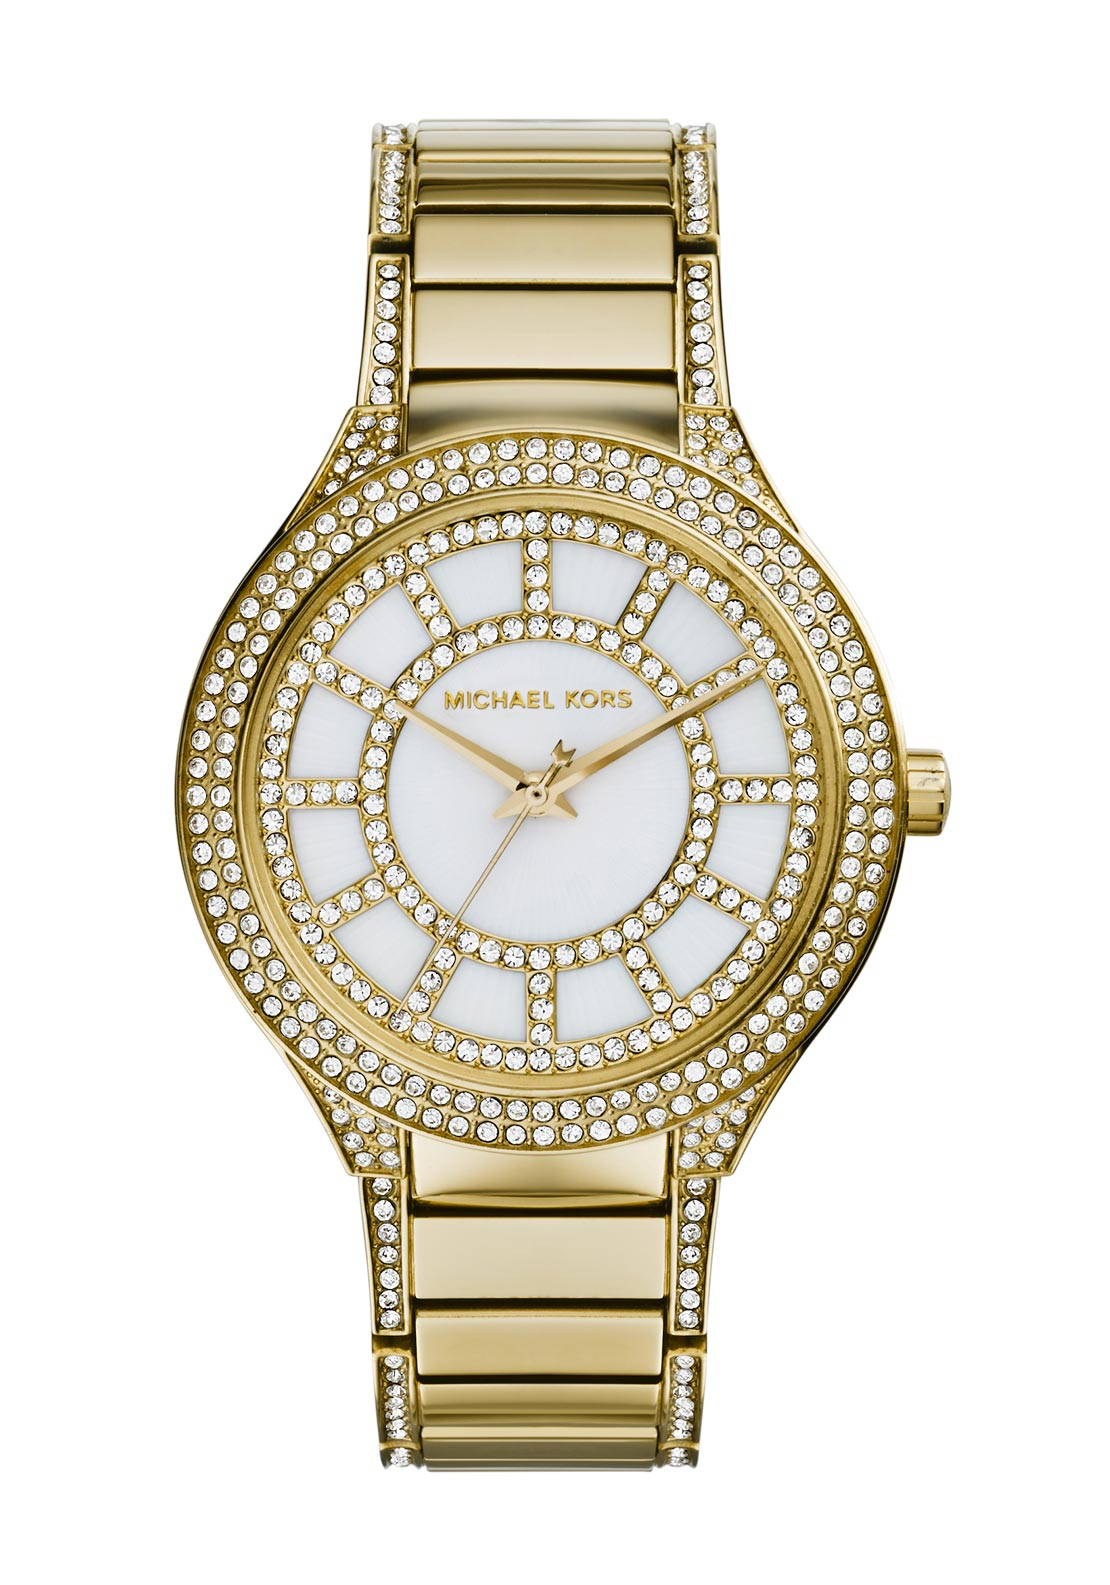 Michael Kors Womens Kerry Pave Embellished Watch, Gold